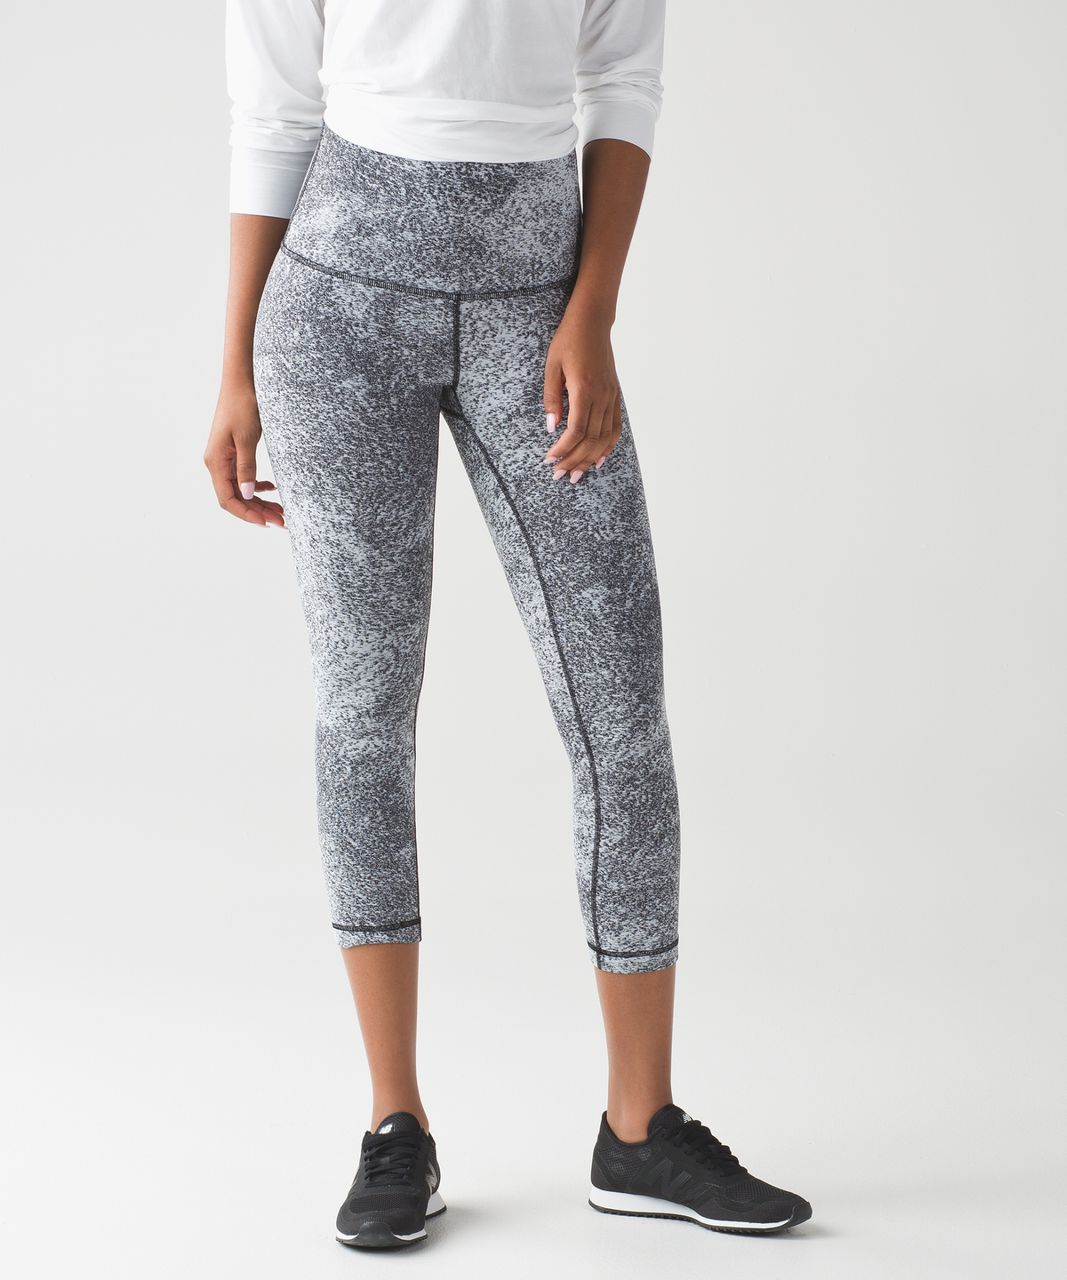 2e0e82df2de4 Lululemon Wunder Under Crop (Hi-Rise) - Luon Spray Jacquard White Black -  lulu fanatics